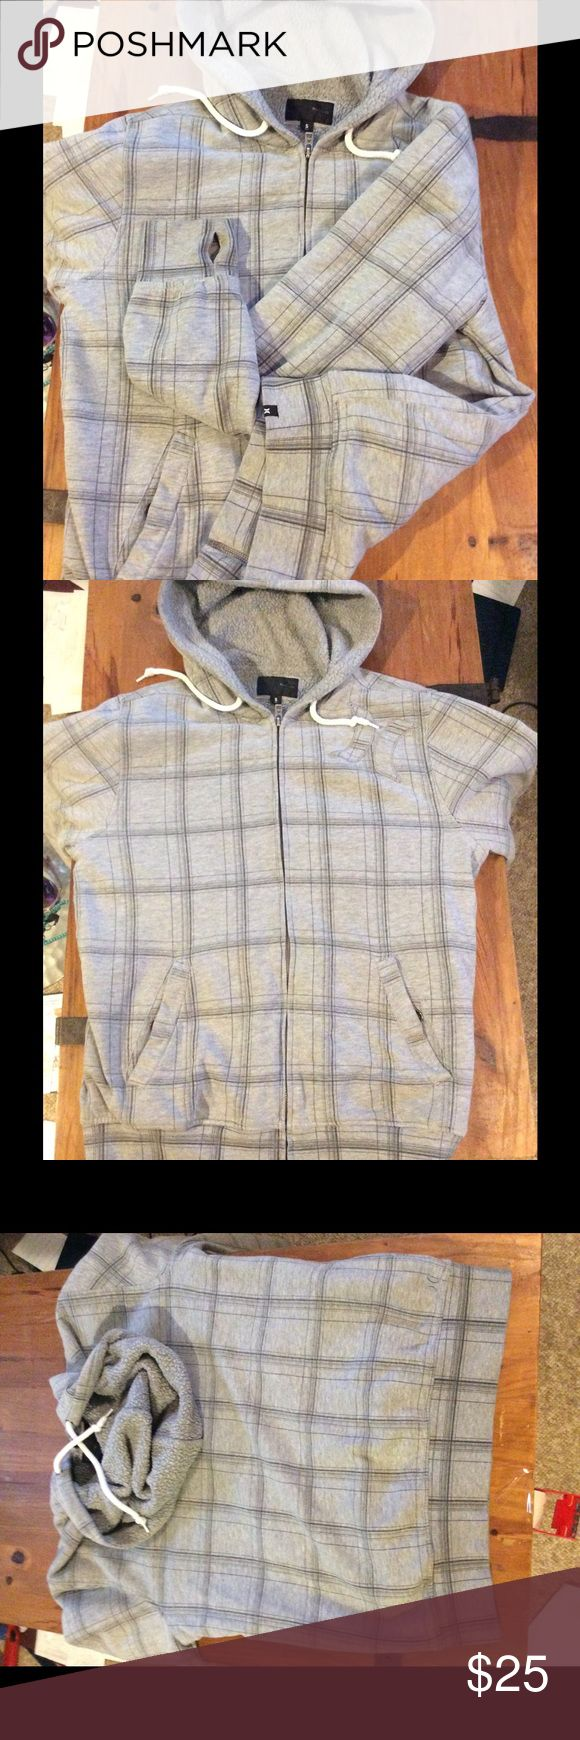 Hurley surf hoodie Quilted Hurley hoodie with thumb holes. Hurley Jackets & Coats Ski & Snowboard